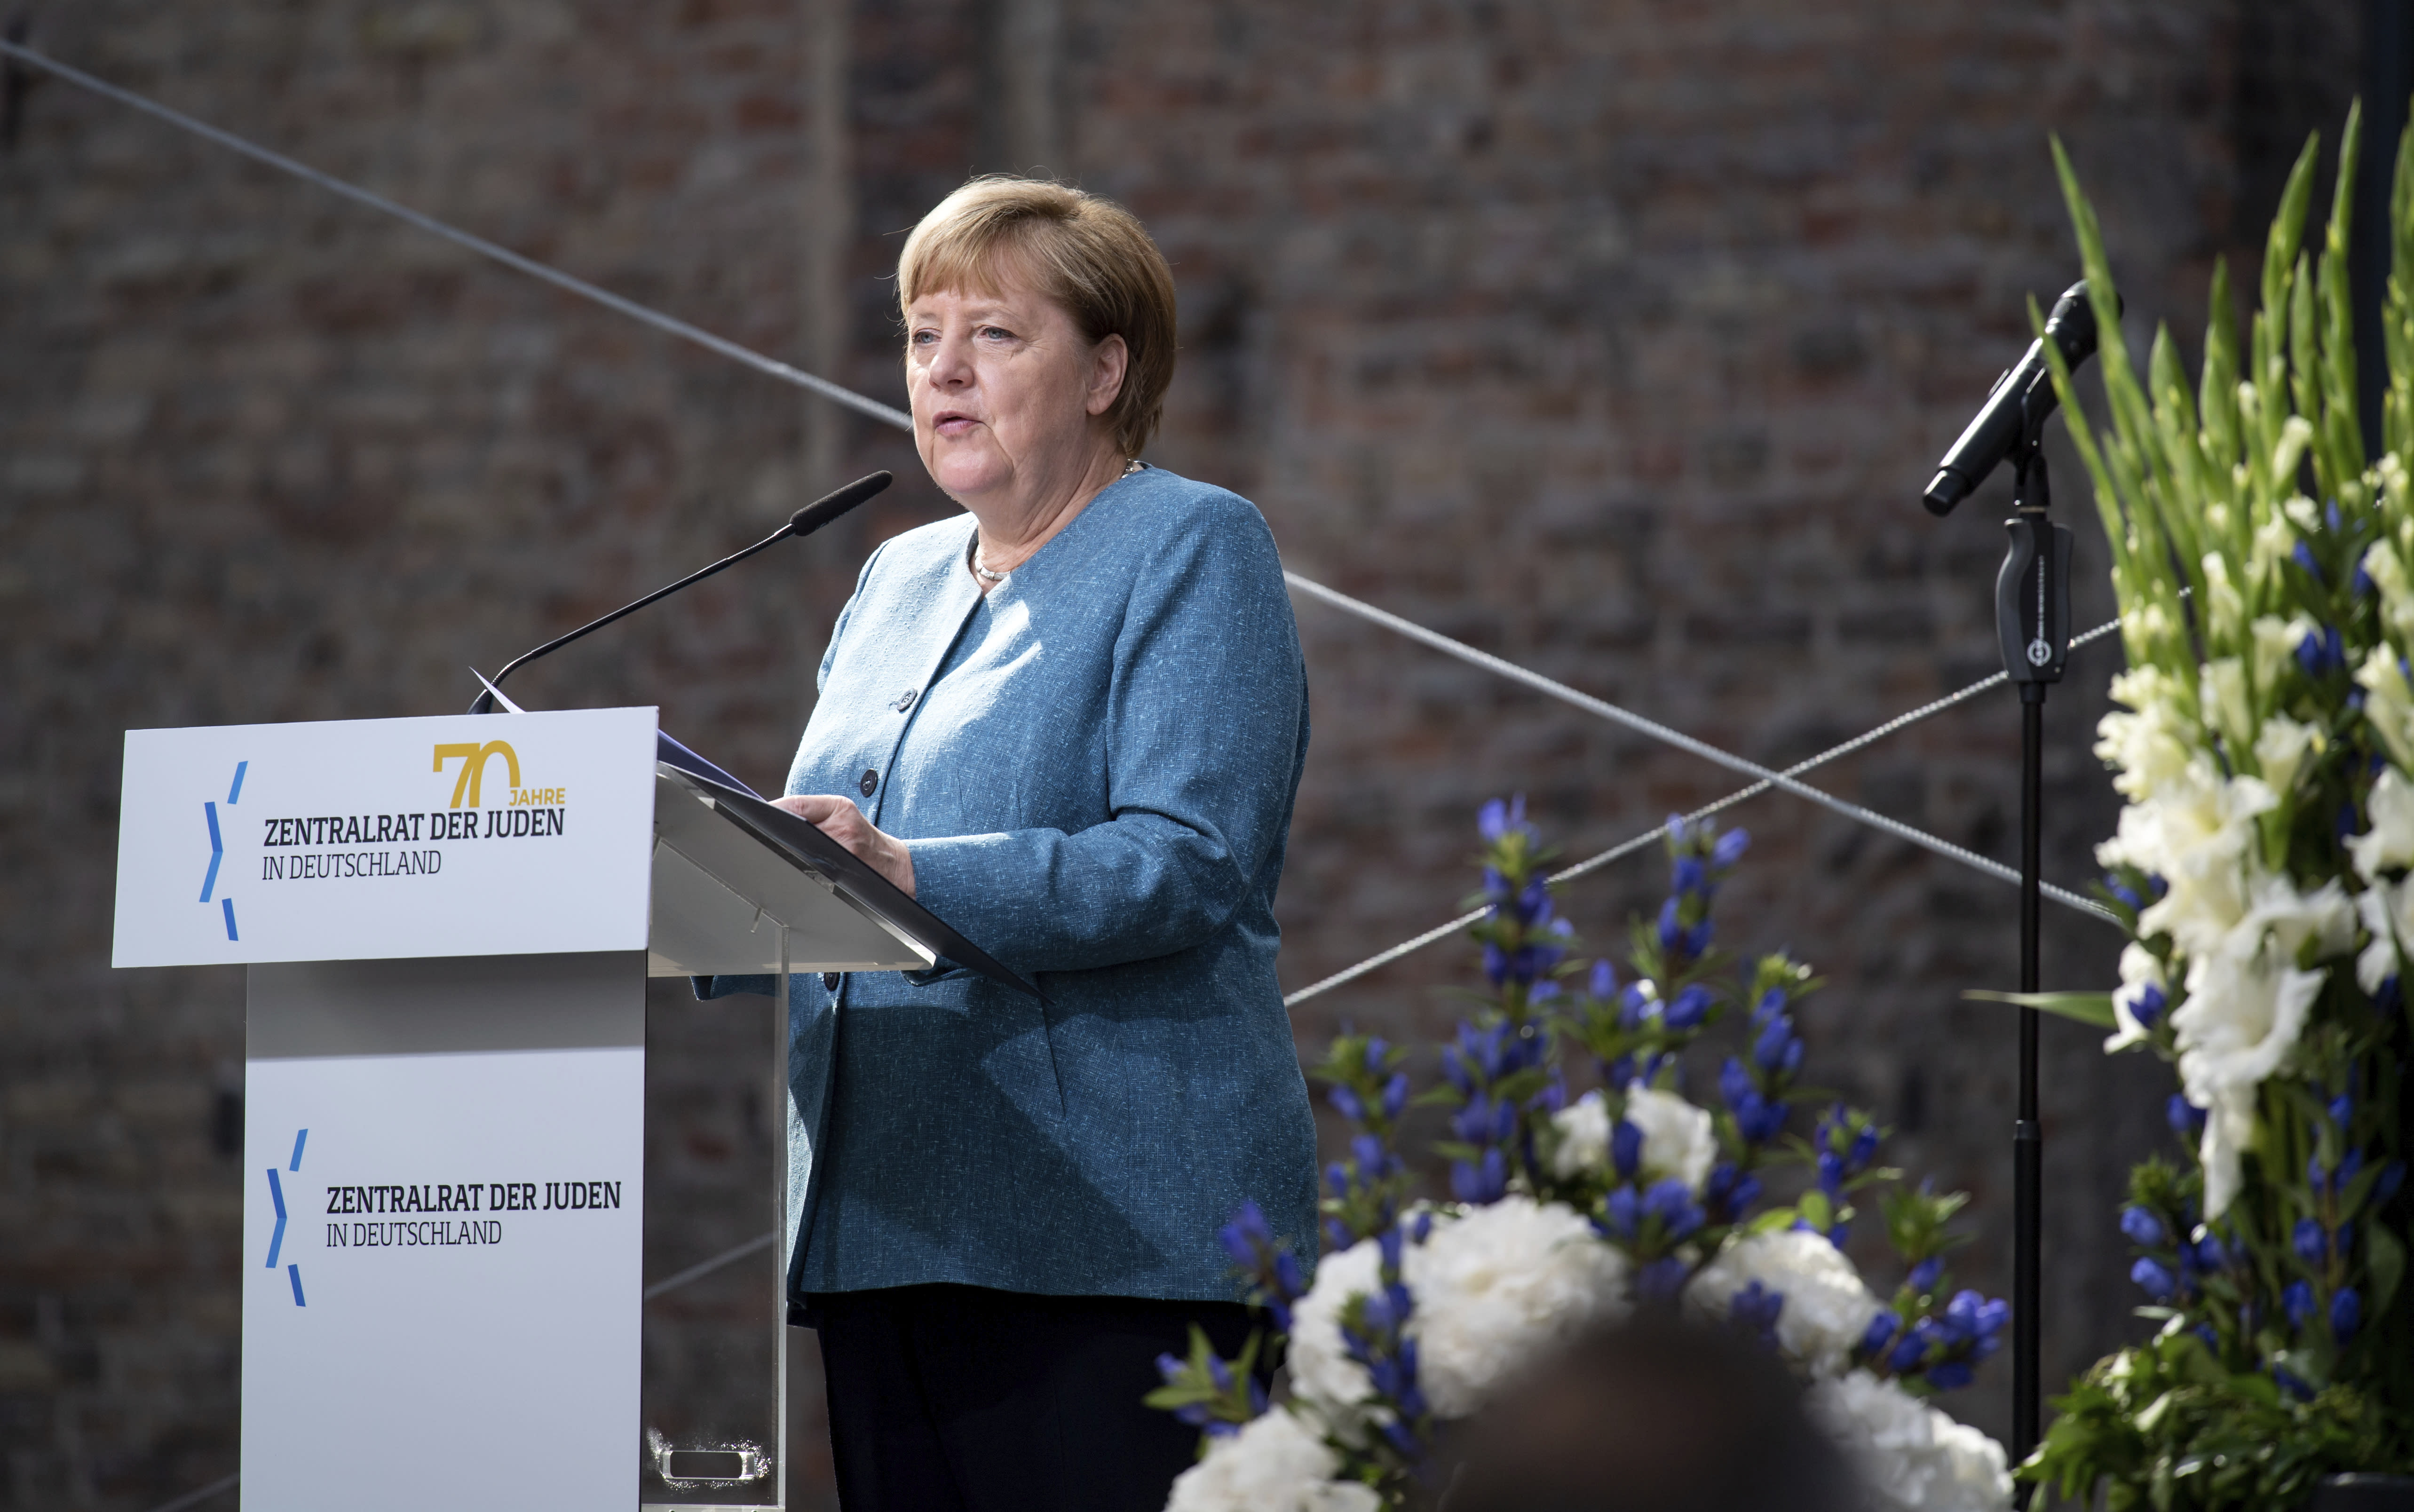 Chancellor Angela Merkel speaks at the ceremony to mark the 70th anniversary of the Central Council of Jews in the courtyard of the New Synagogue in Berlin, Germany, Tuesday, Sept. 15, 2020. The Central Council of Jews in Germany was founded on 19 July 1950 in Frankfurt am Main. (Bernd von Jutrczenka/Pool via AP)